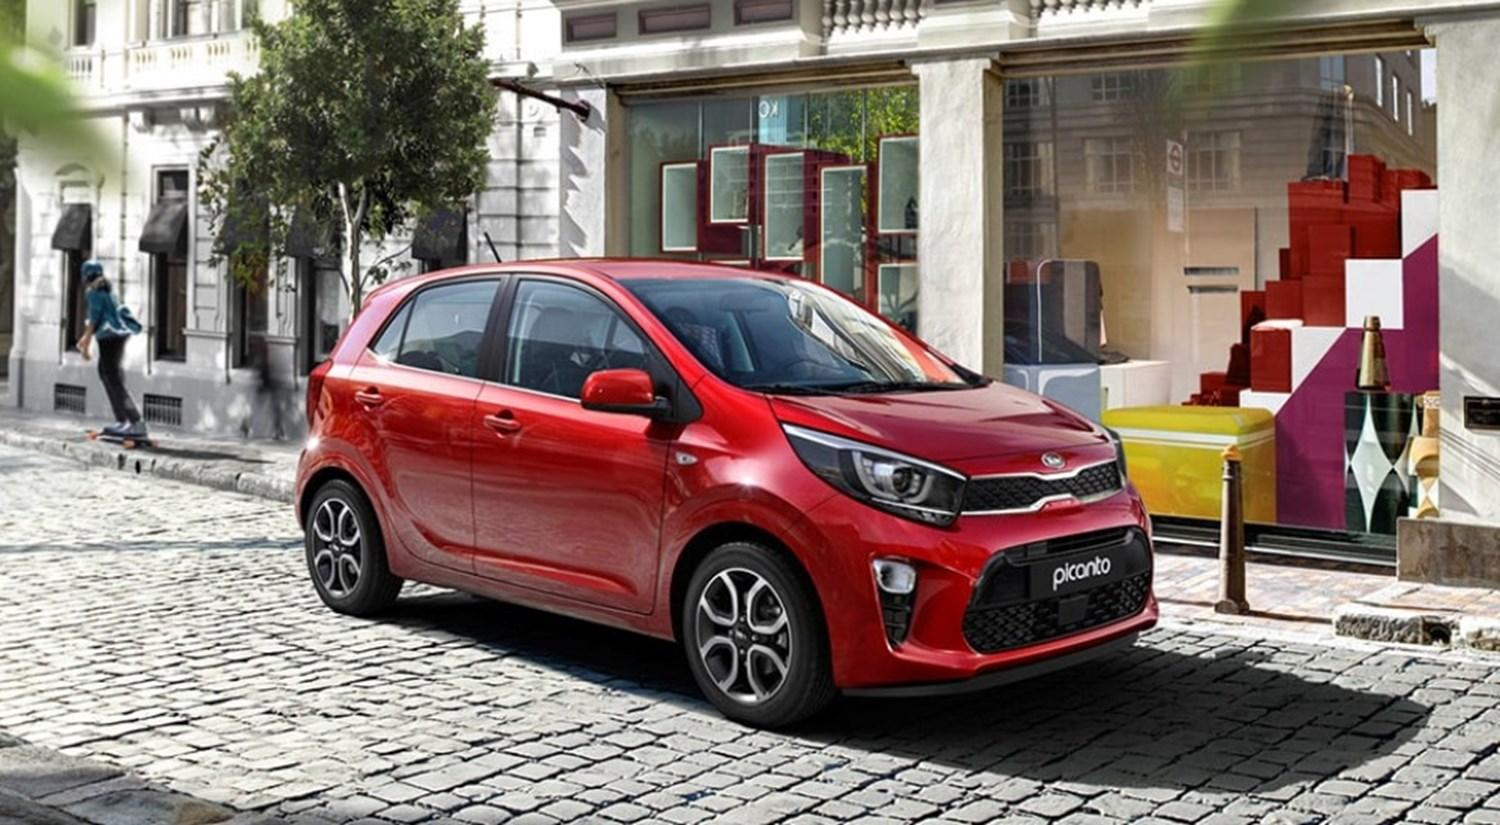 Red Kia Picanto parked on cobbled street